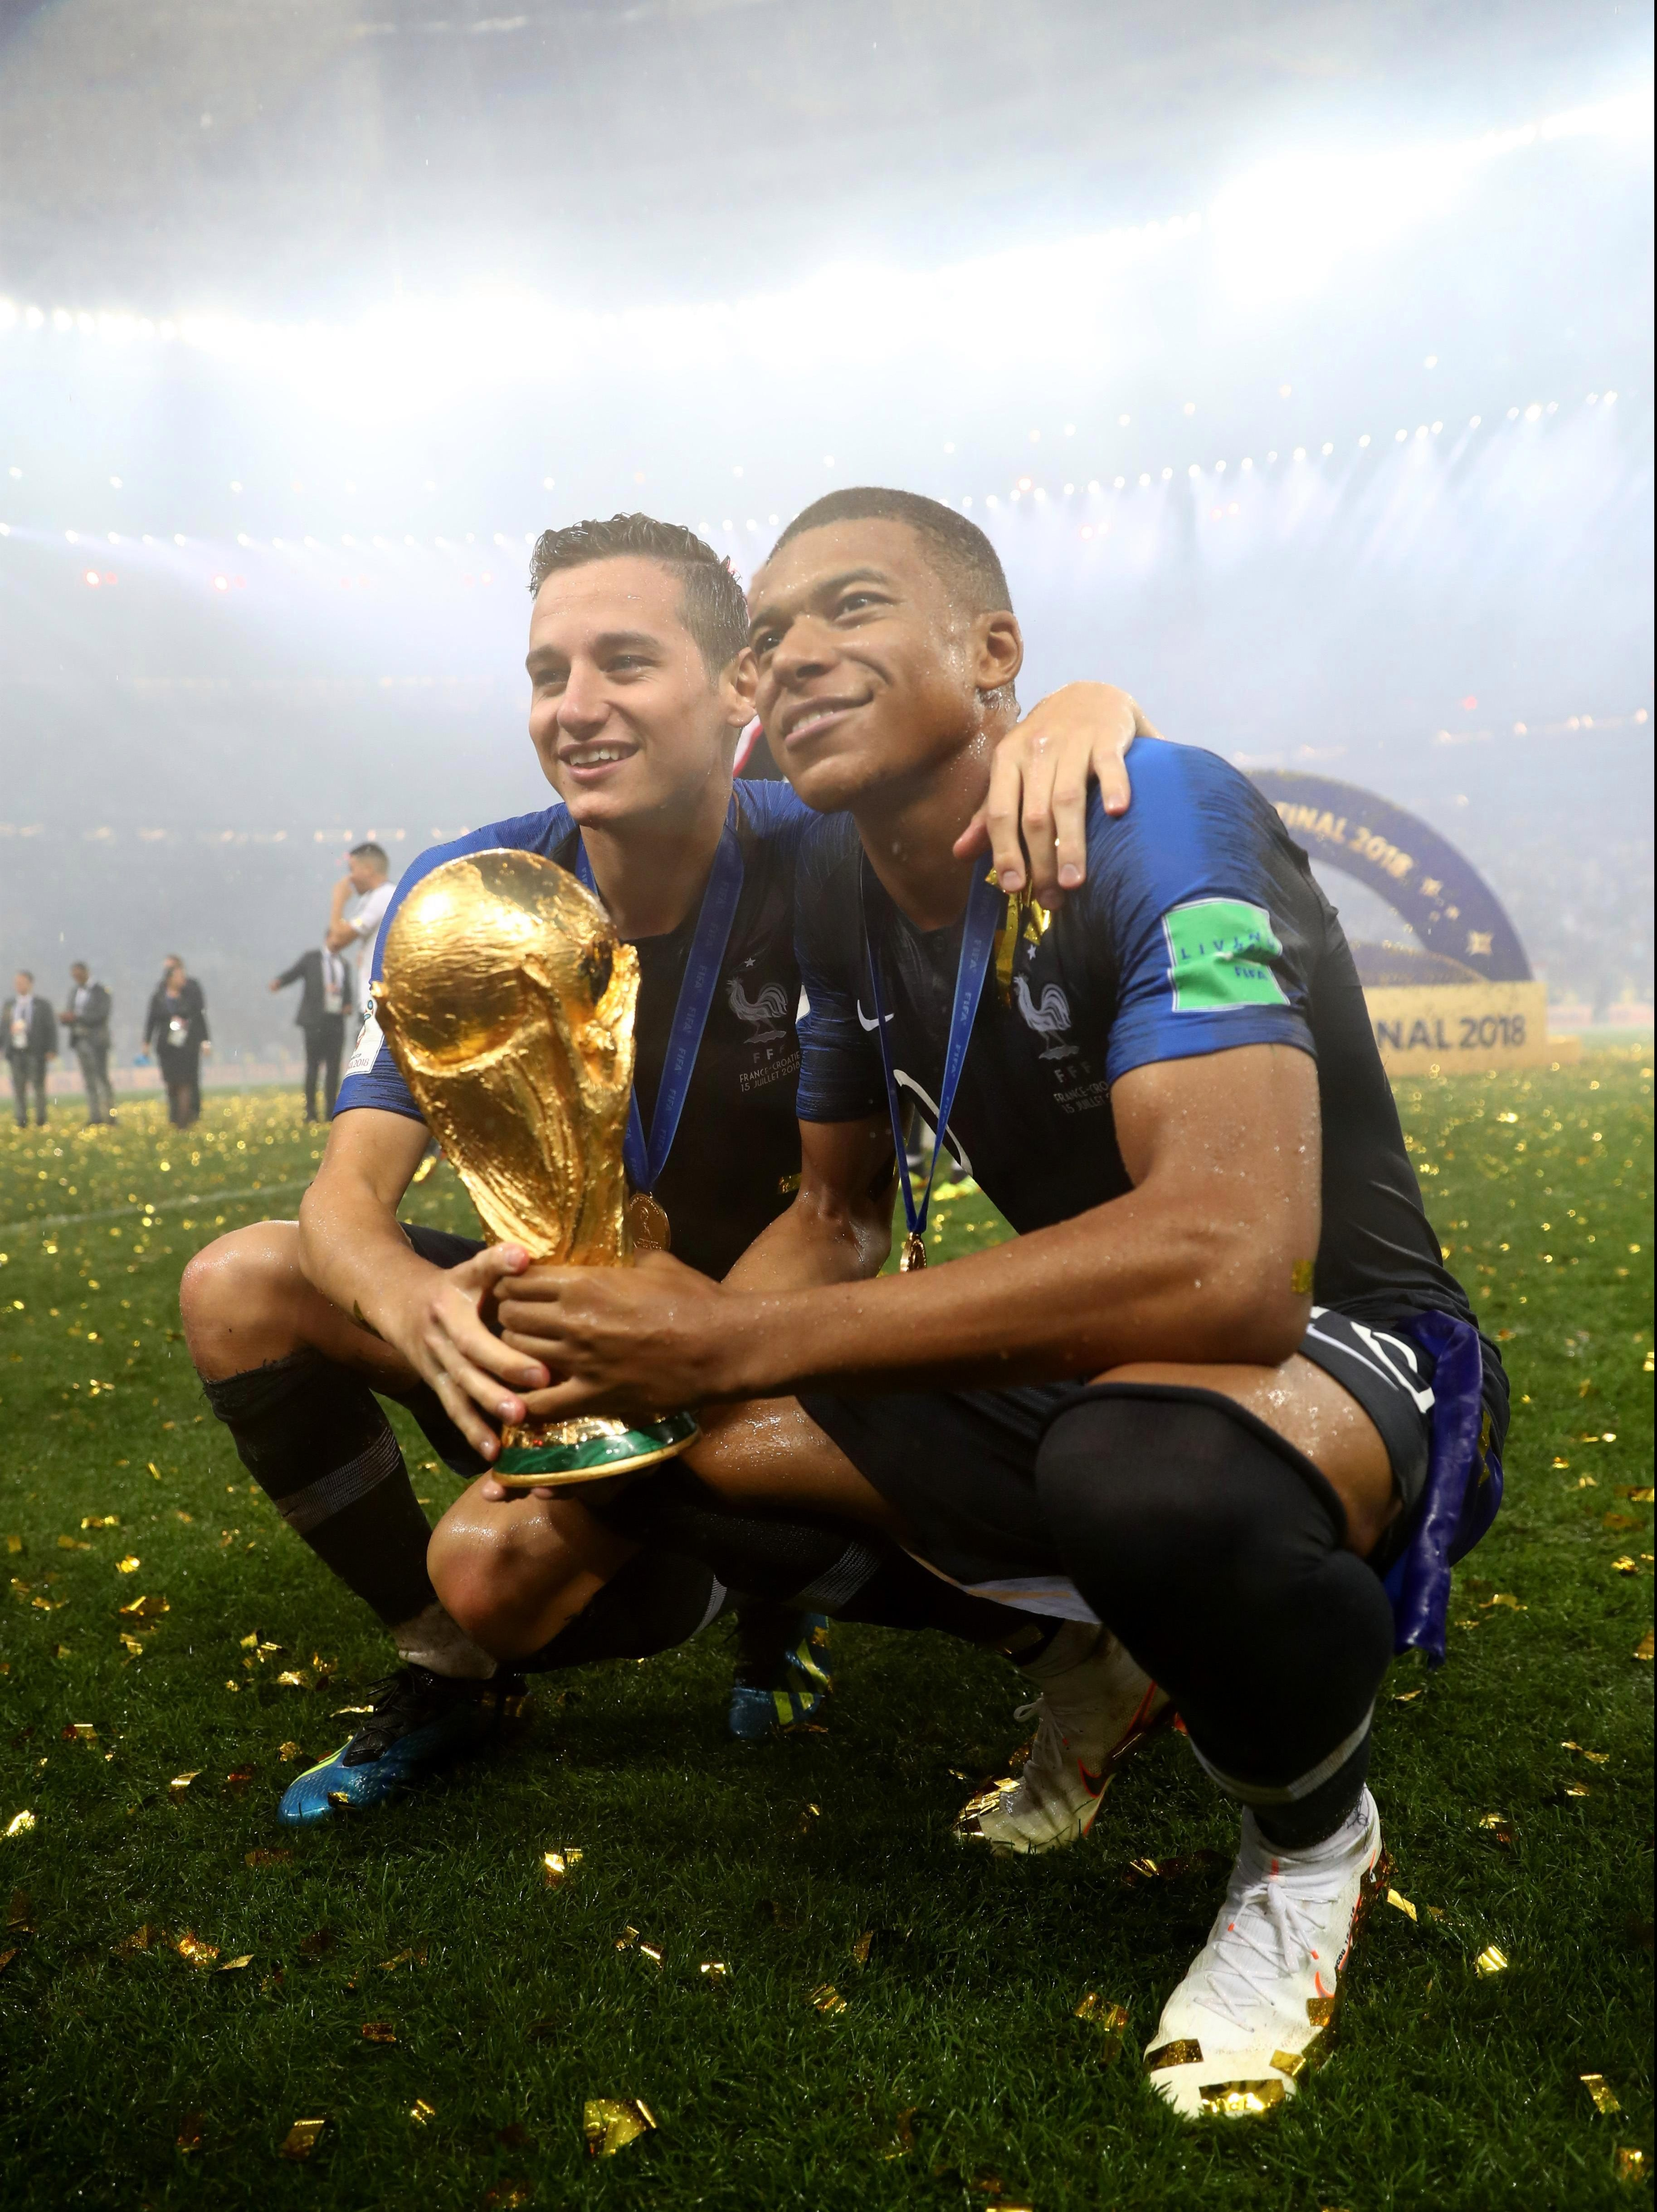 From drinking out of Sports Direct mugs to lifting the World Cup